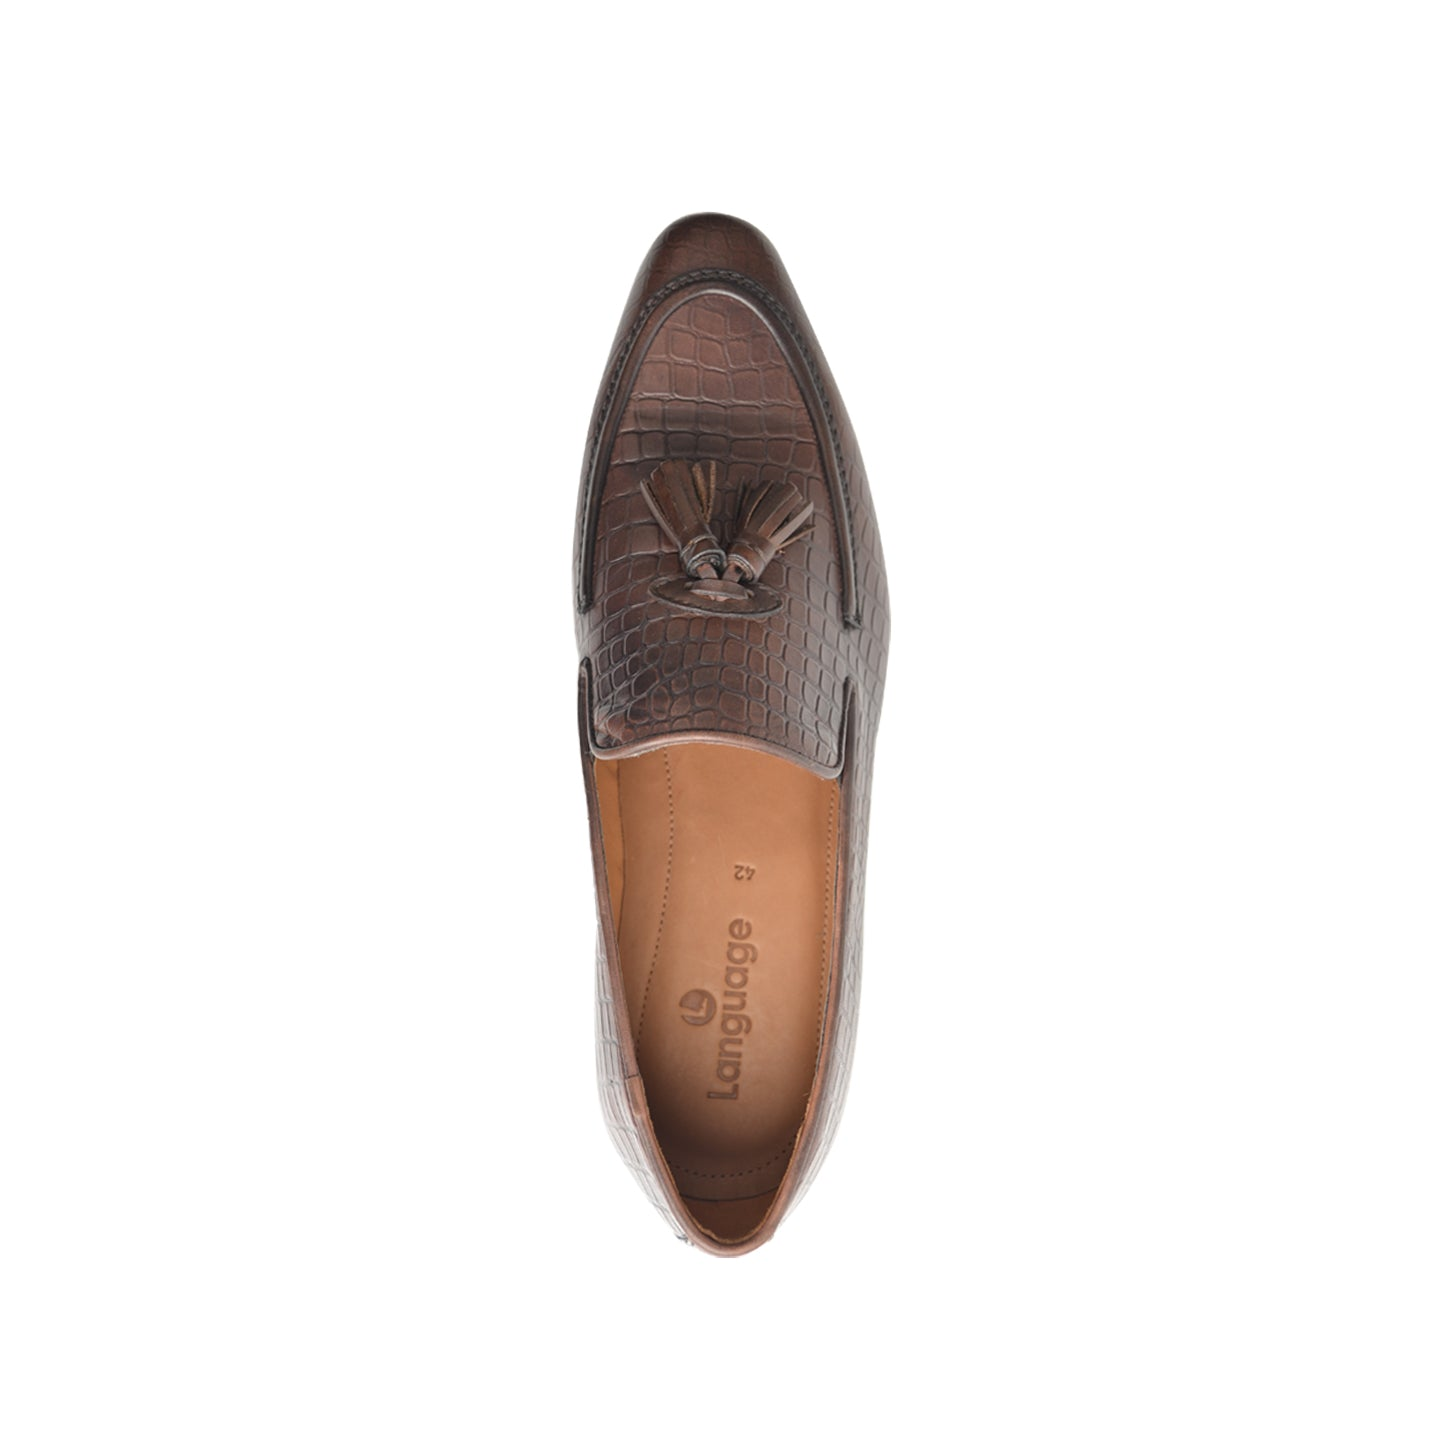 LM840 - Language Palmer Men's Brown  Dress Loafers